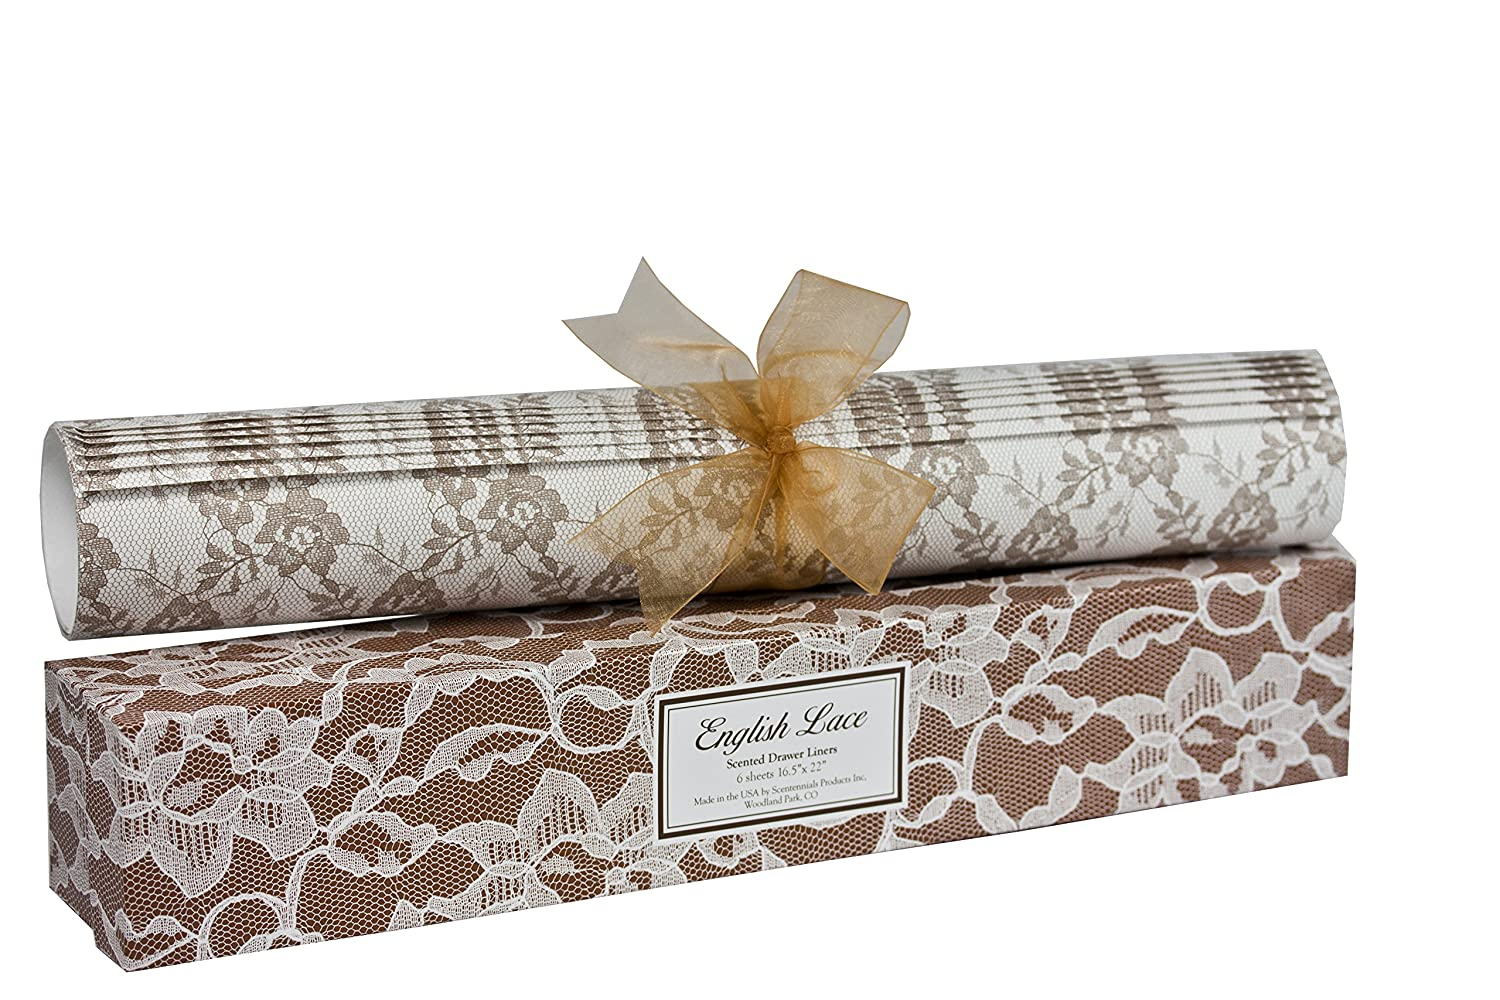 English Lace Scented Drawer Liner from Scentennials Scentennials Products Premium